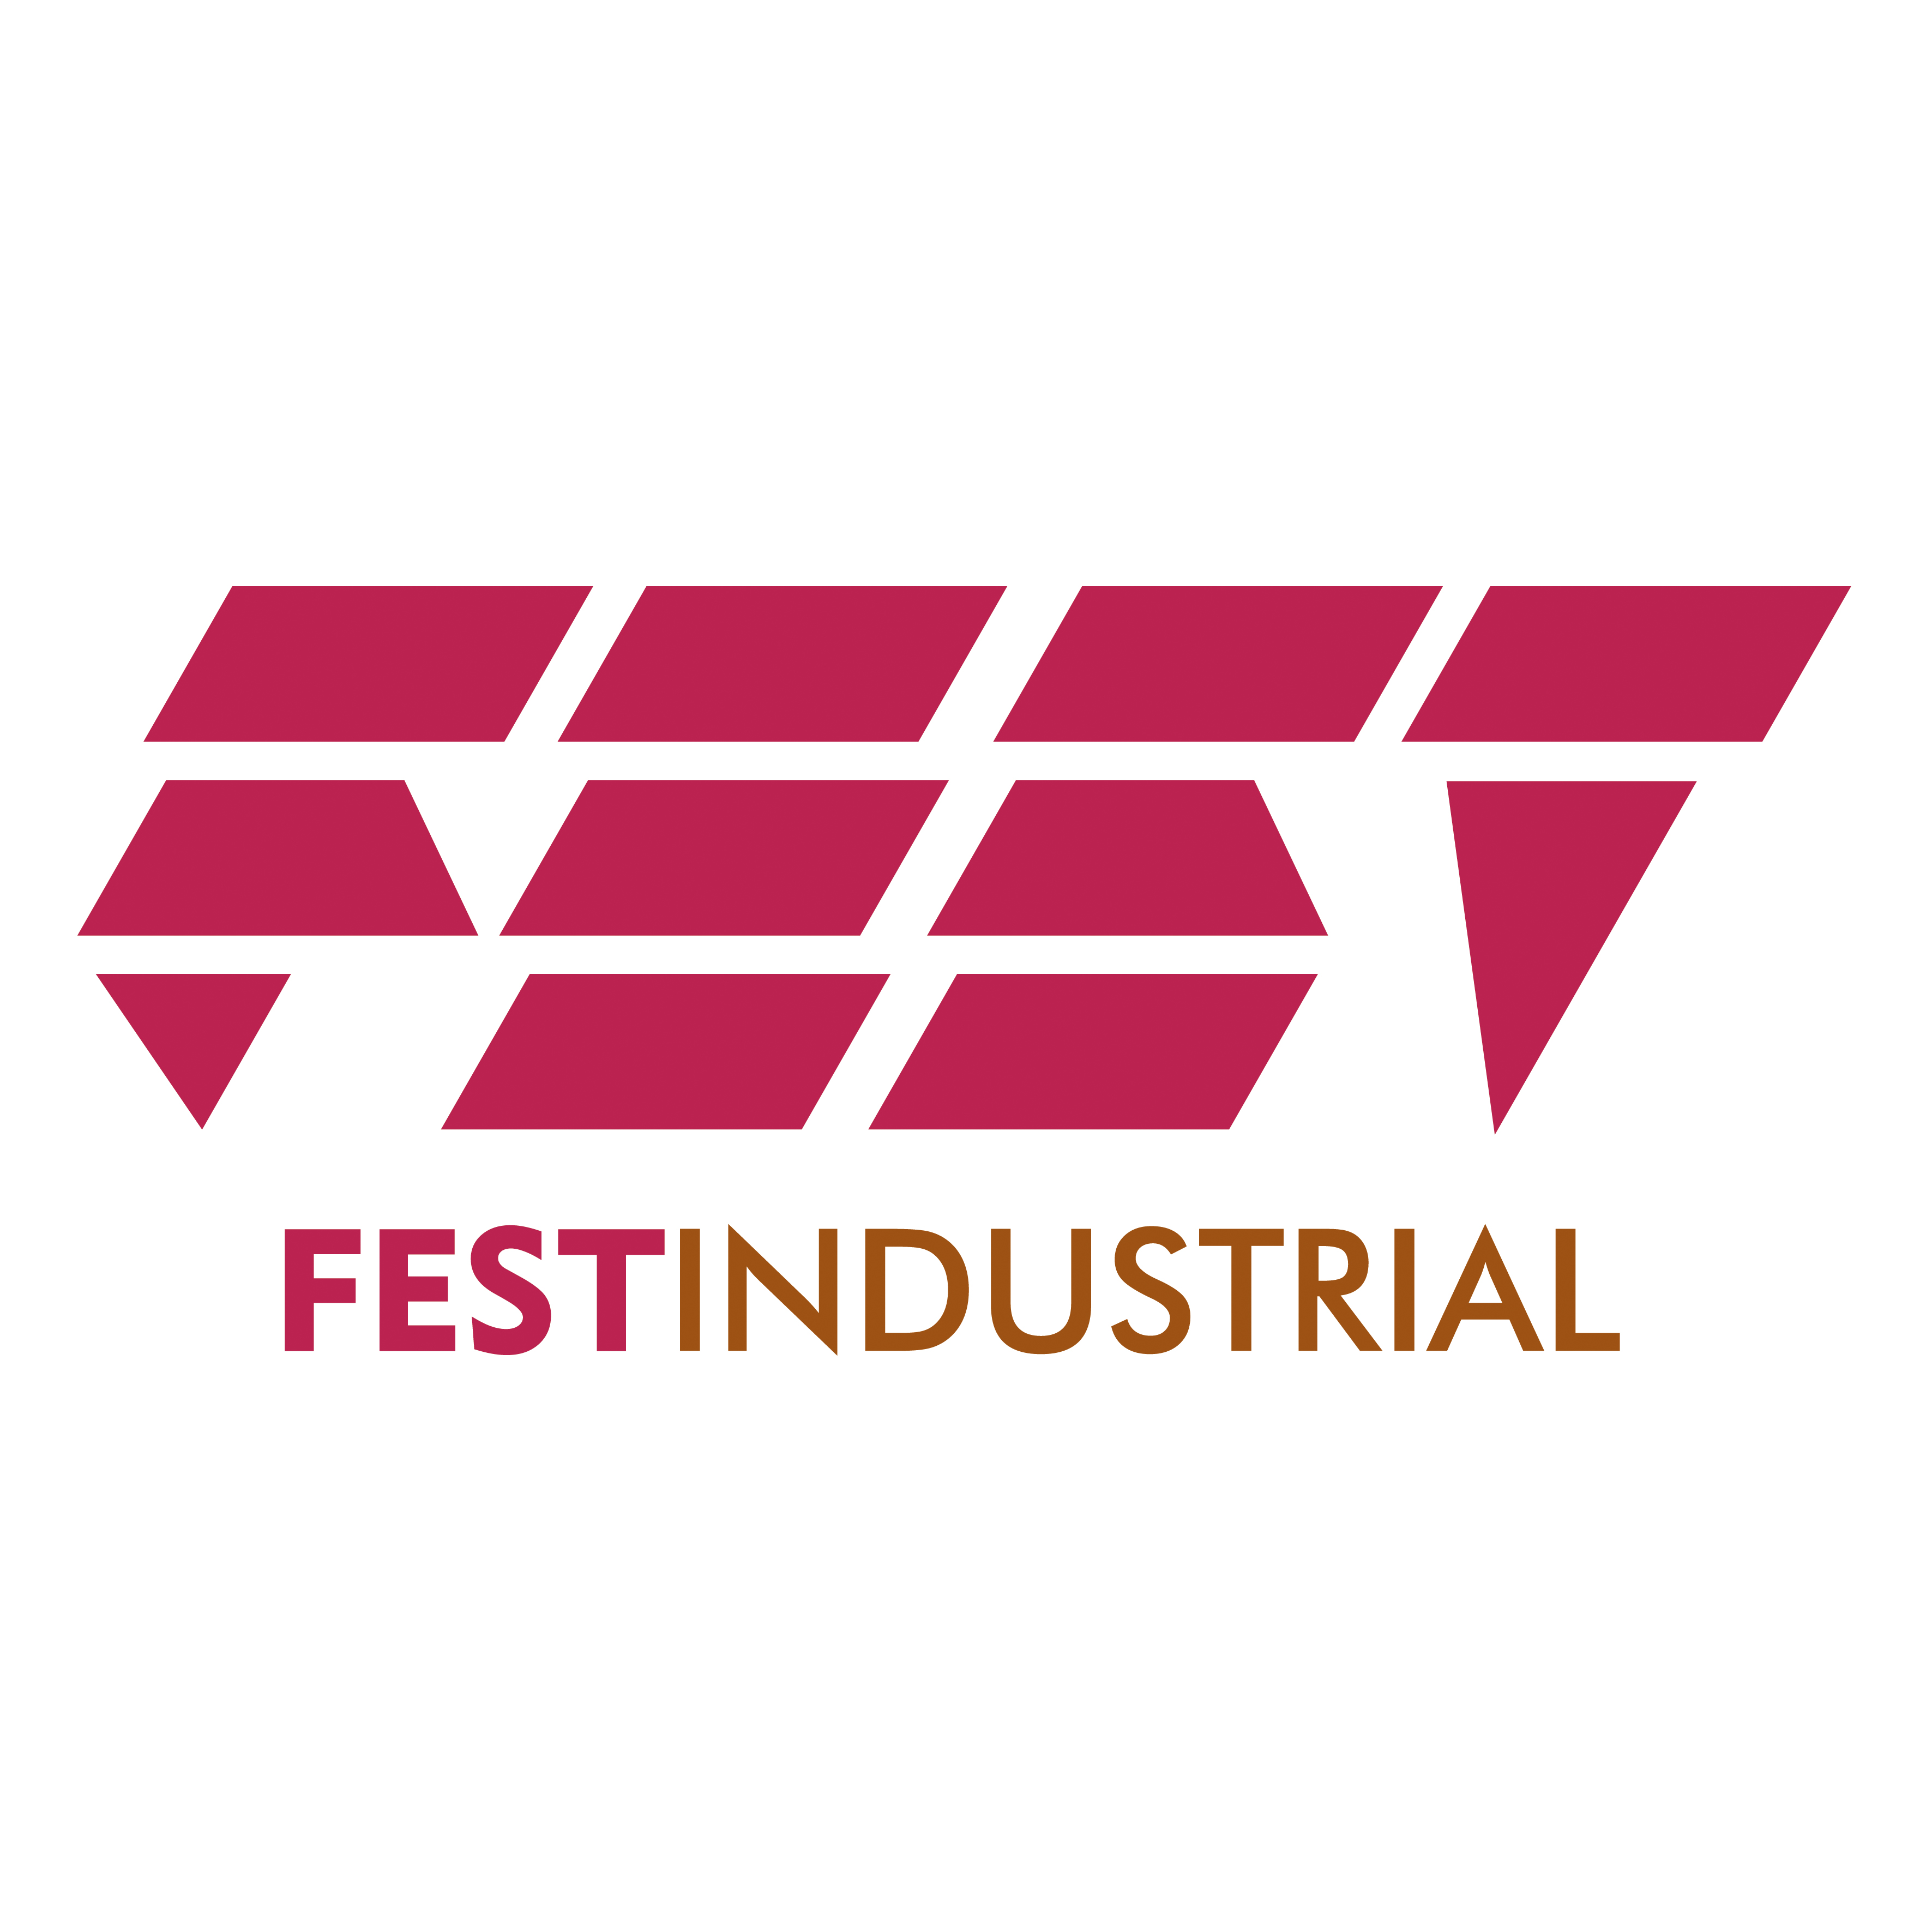 FEST INDUSTRIAL CO.,LTD.